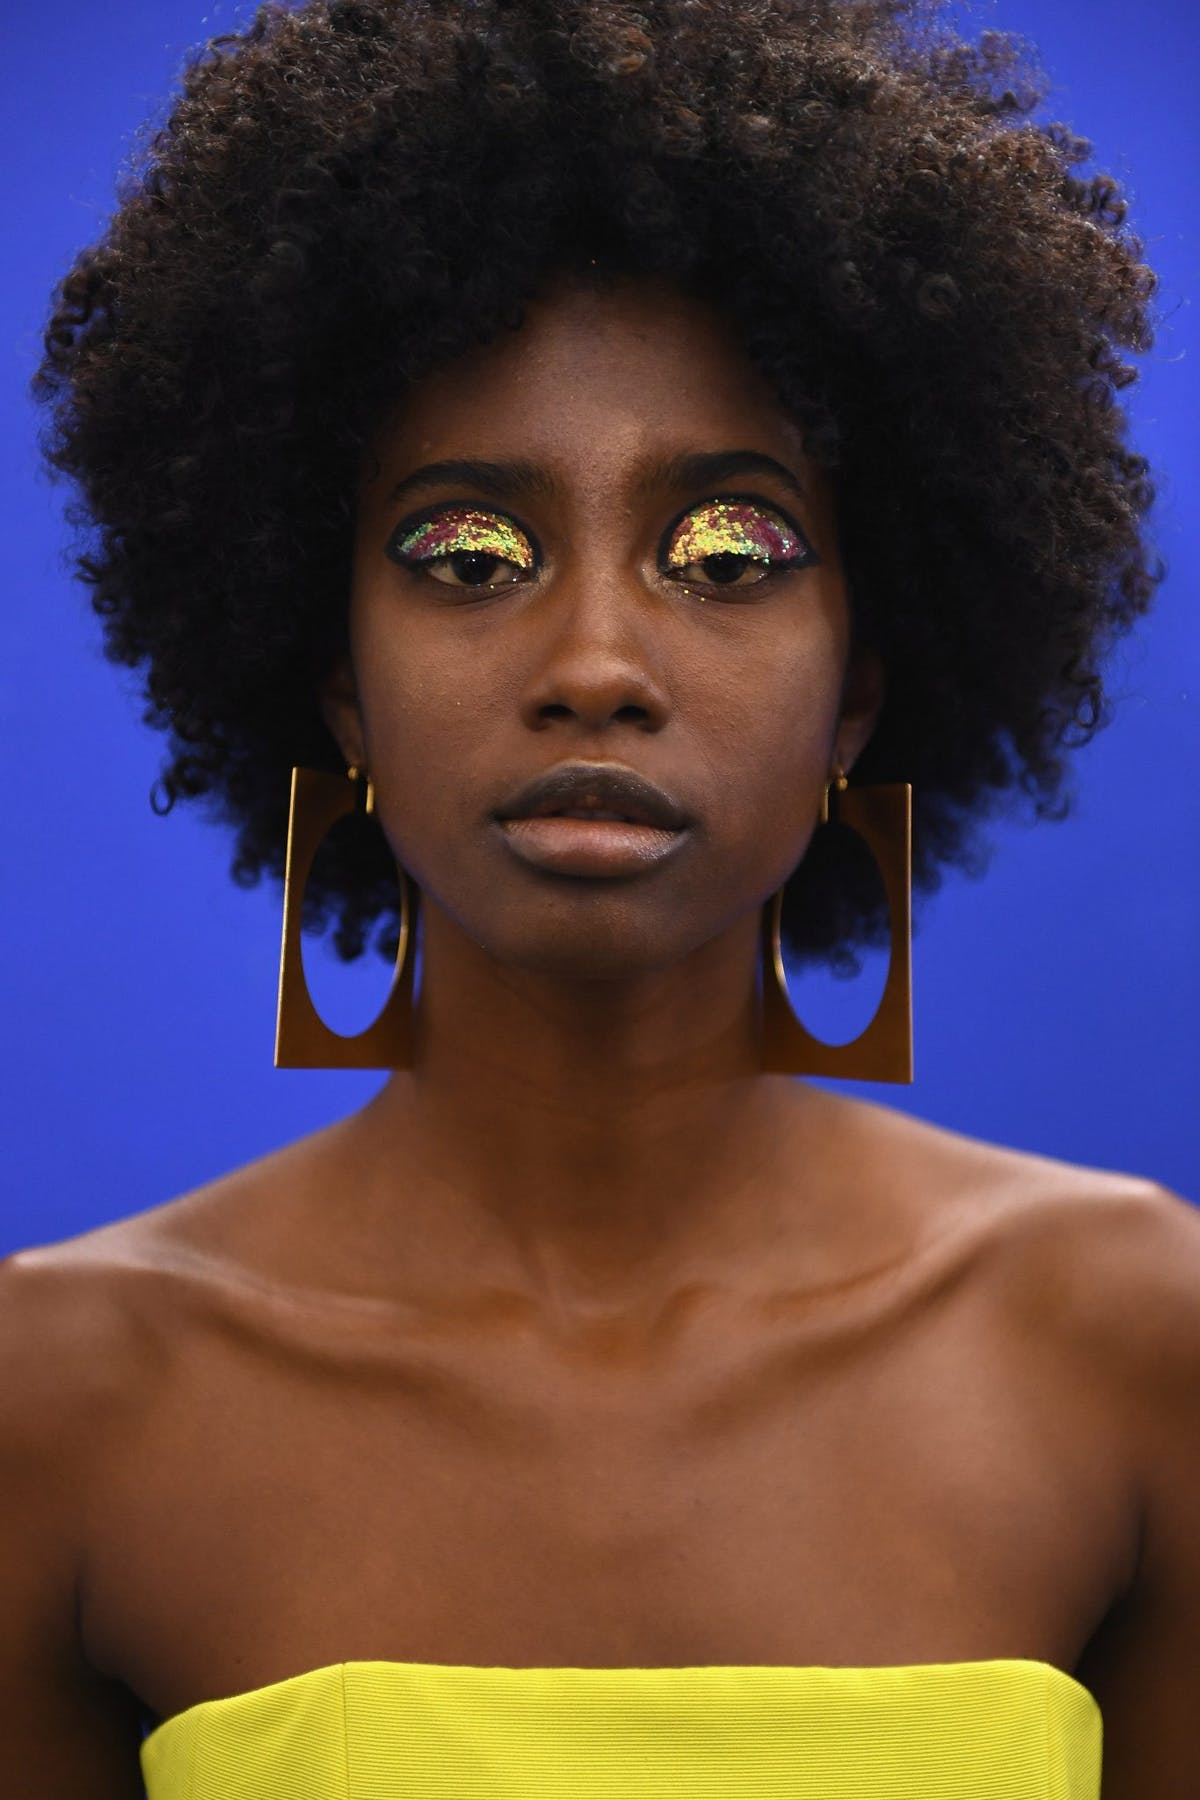 Coolest festival make-up looks to try for Glastonbury 2019